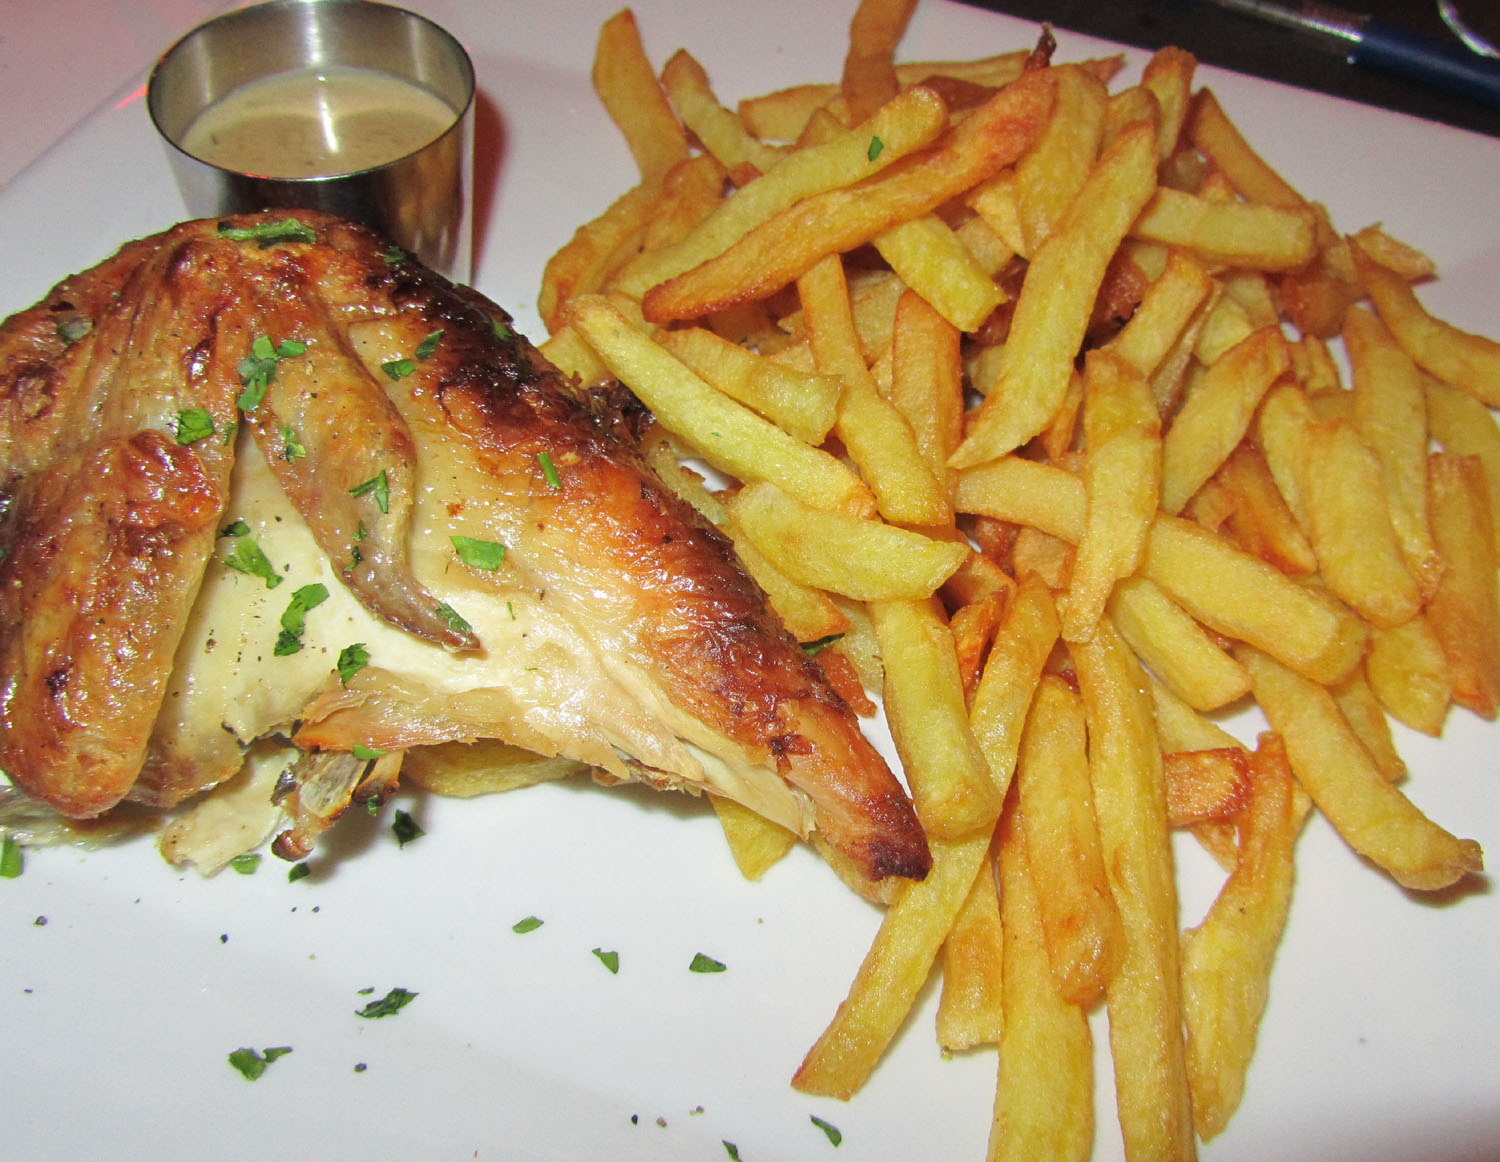 France-Paris-Food-And-Drink-Frites